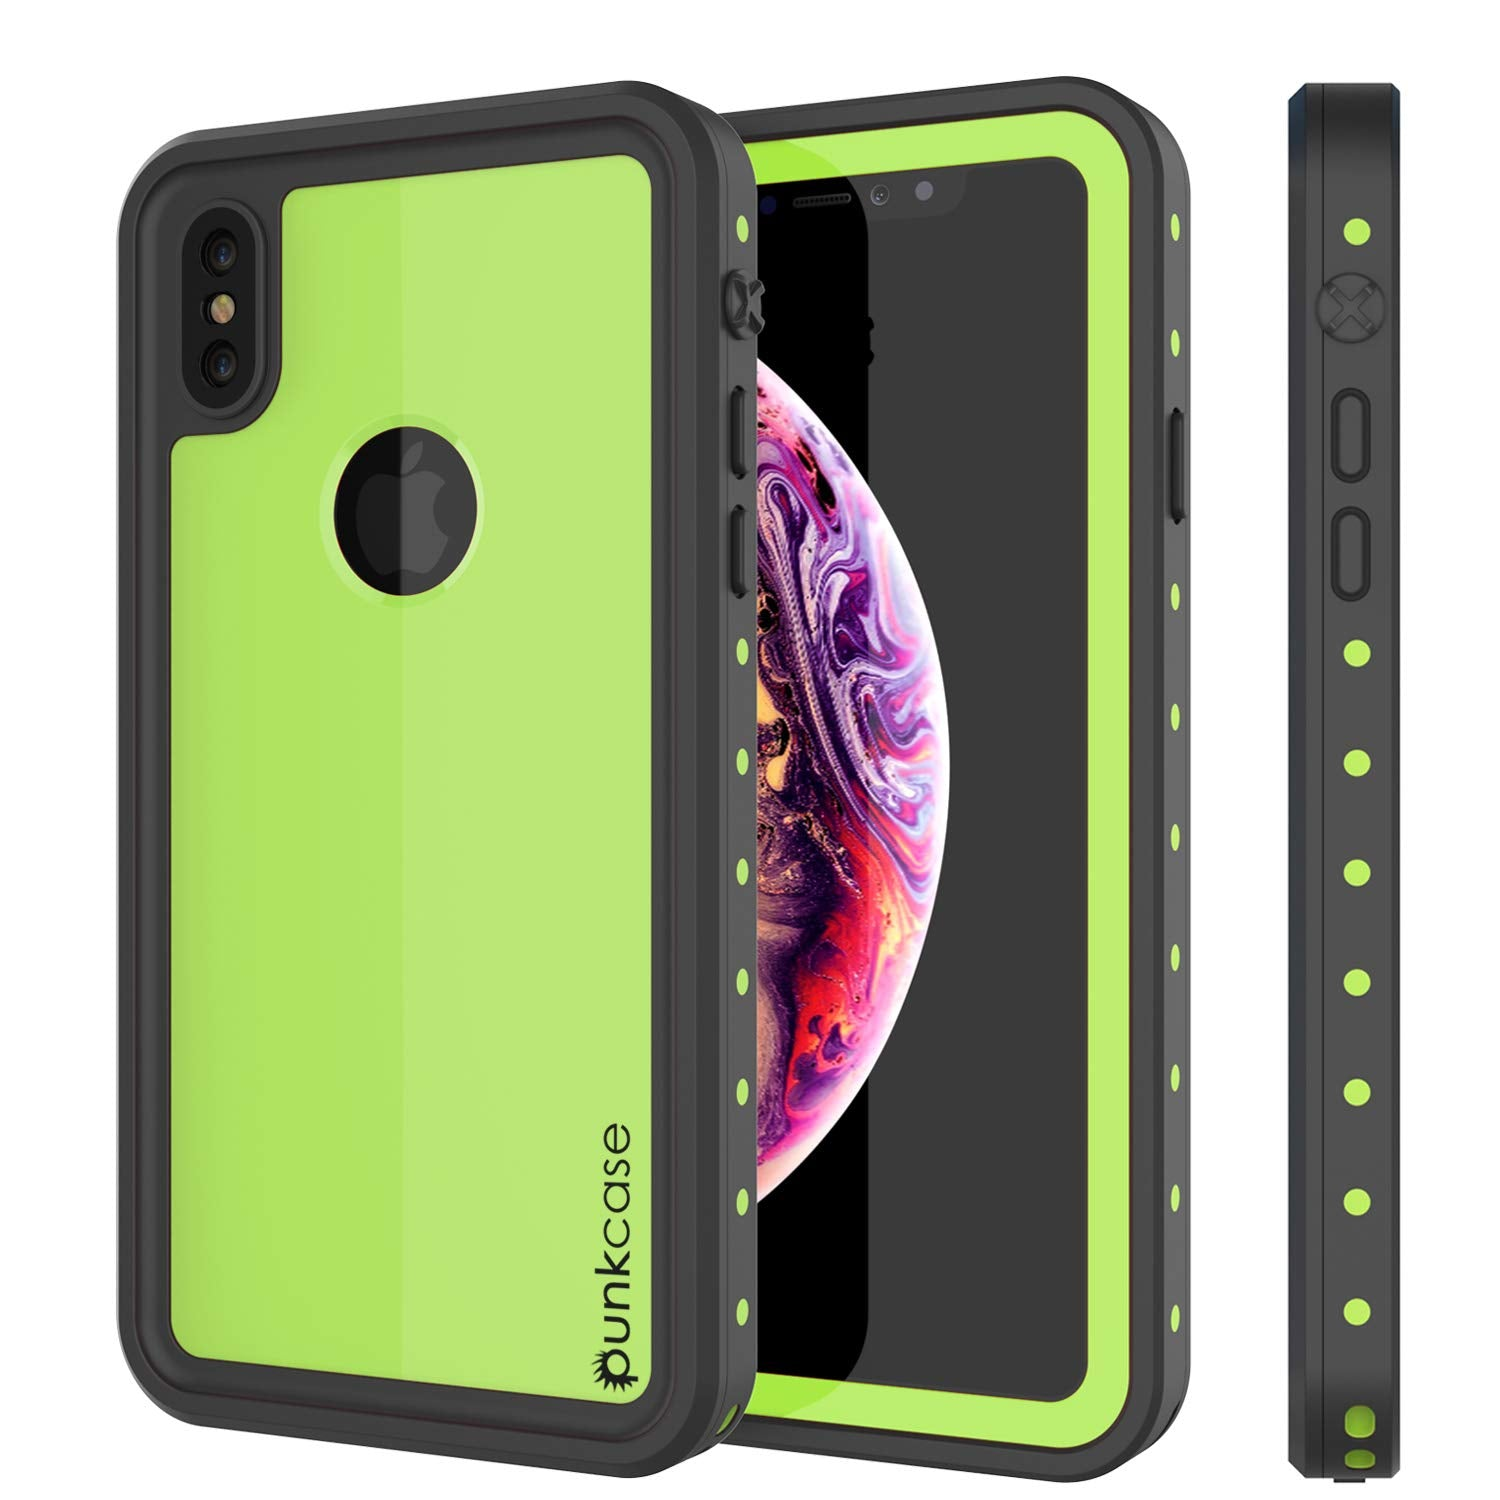 iPhone XS Max Waterproof IP68 Case, Punkcase [Light green] [StudStar Series] [Slim Fit] [Dirtproof]